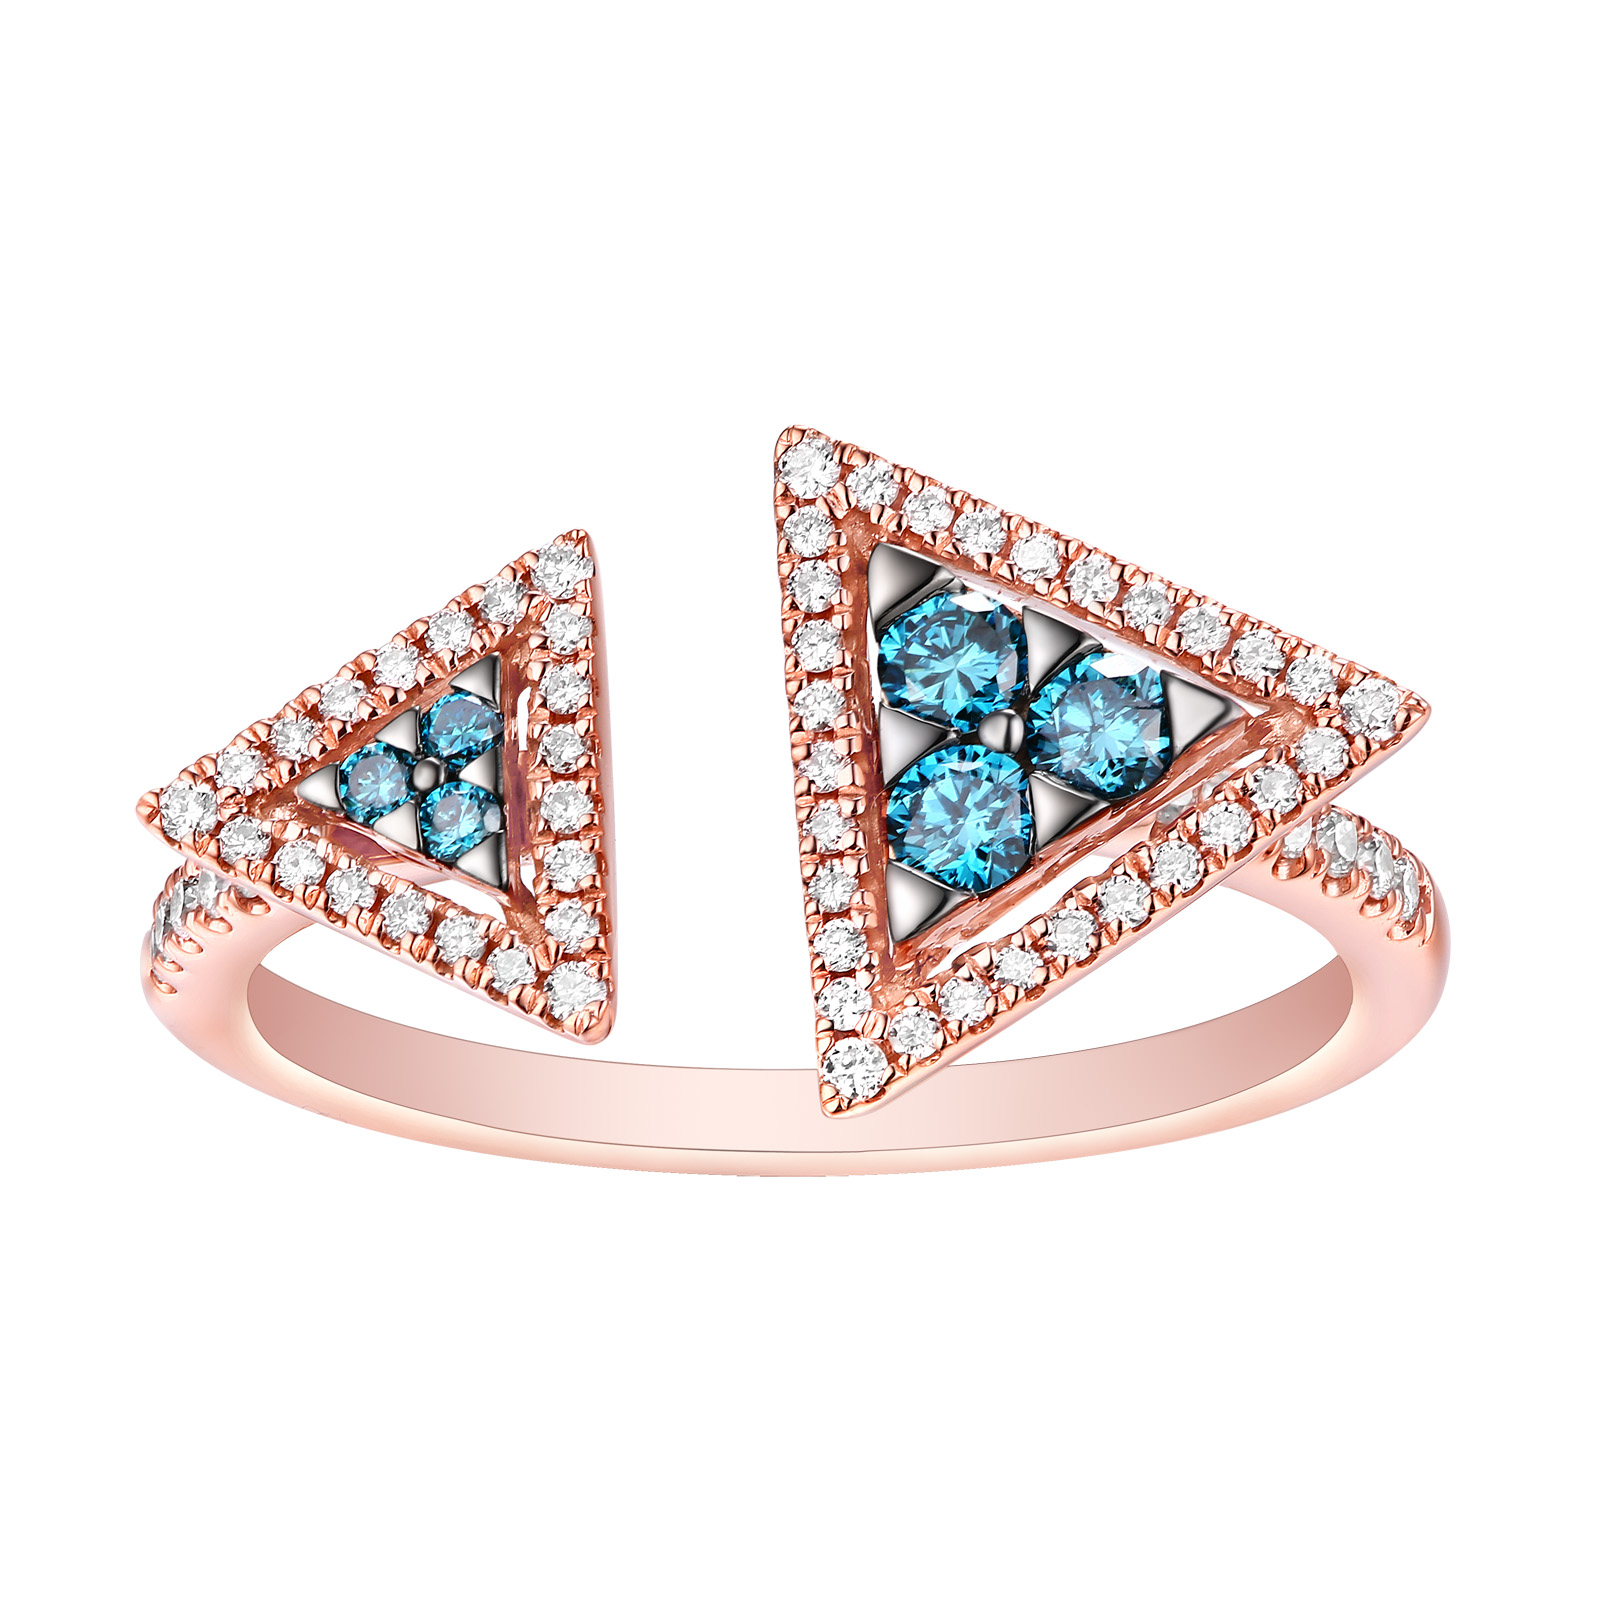 R25080ICE- 18K Rose Gold Diamond Ring, 0.43 TCW